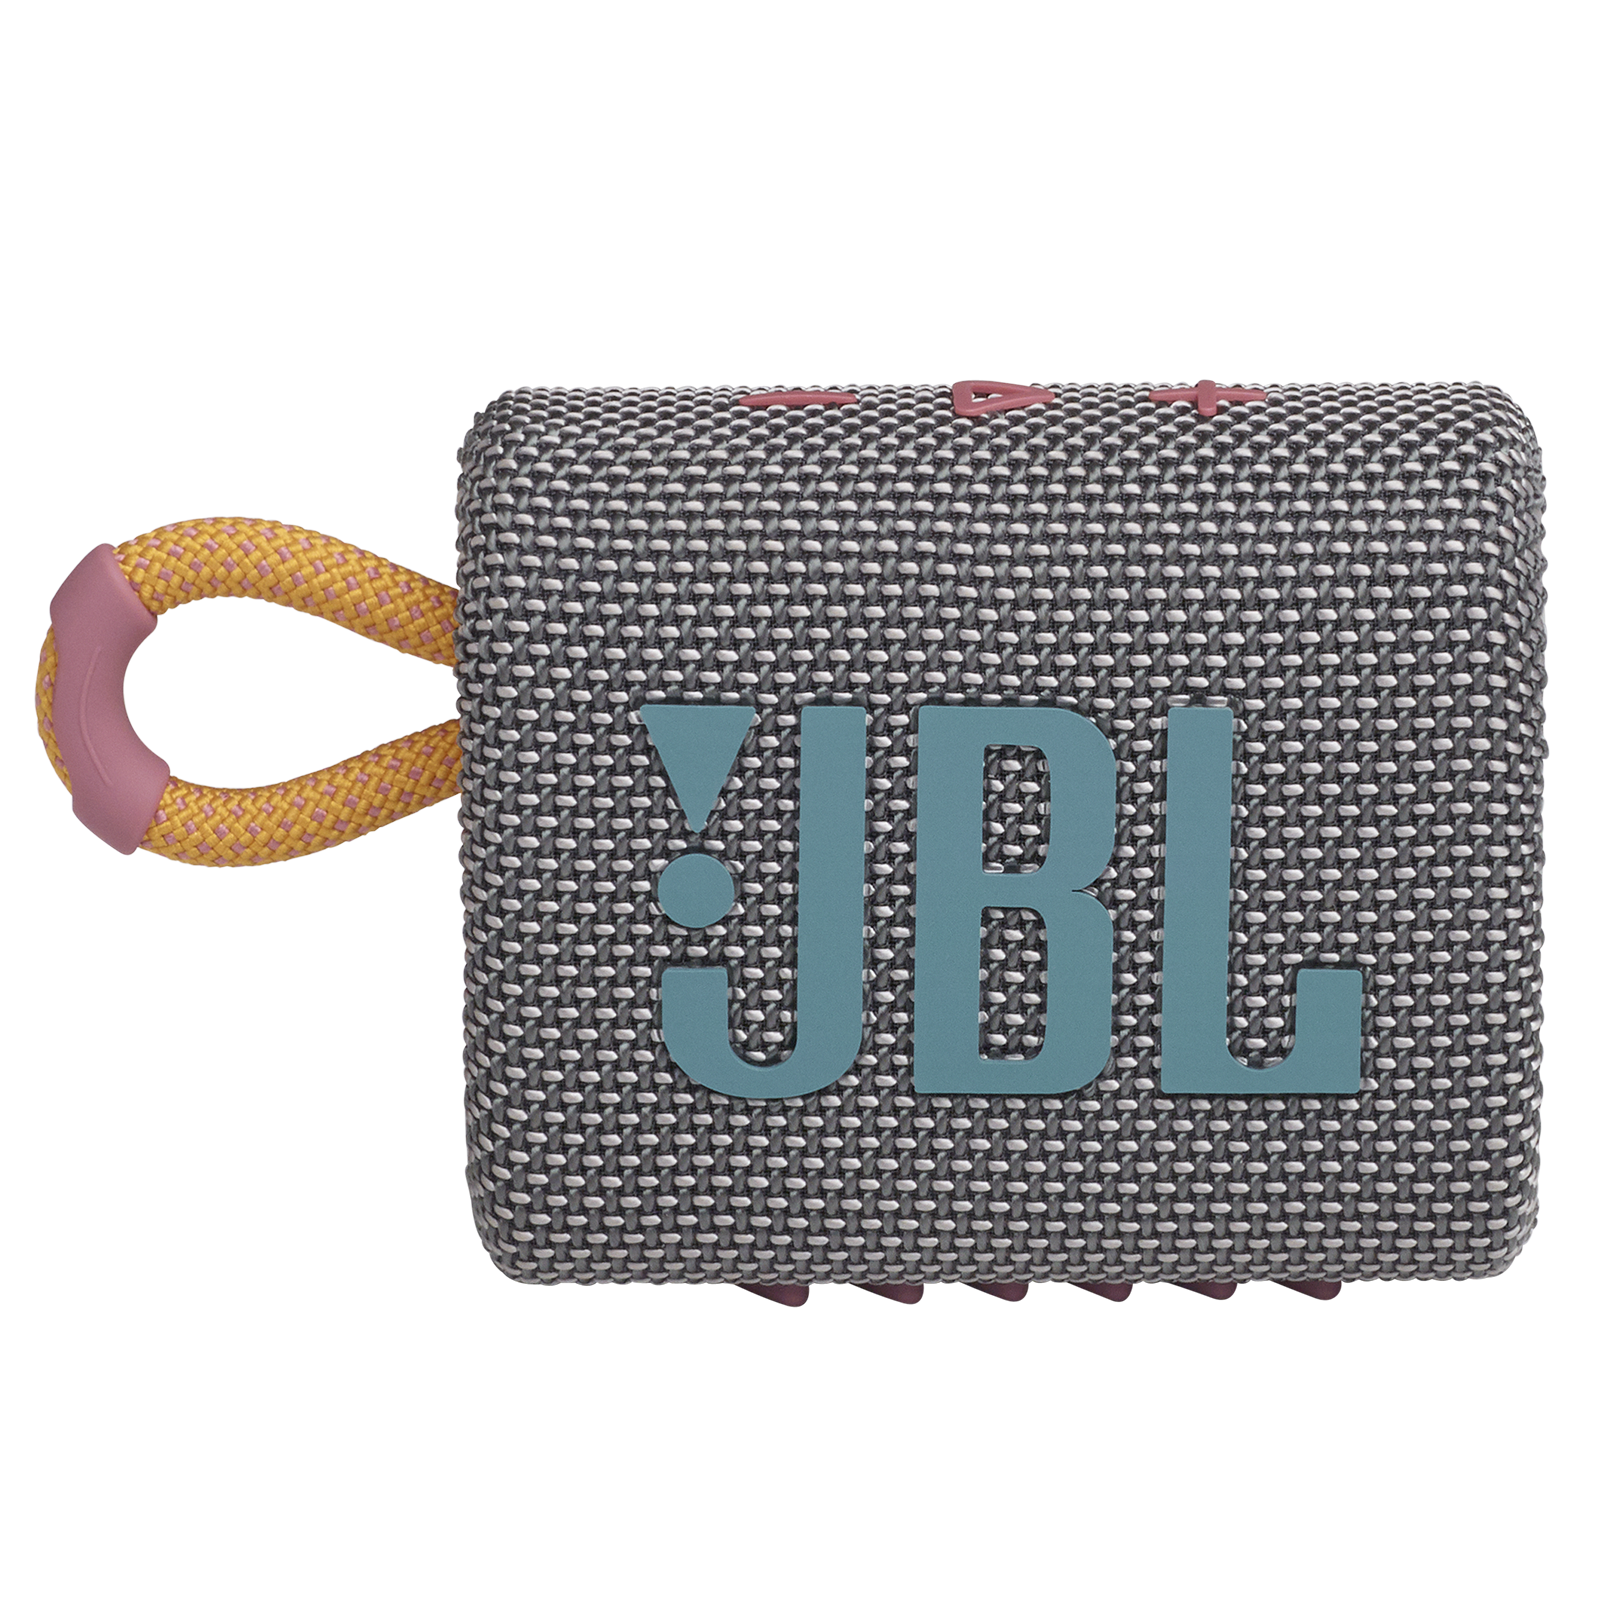 JBL GO 3 - Grey - Portable Waterproof Speaker - Front